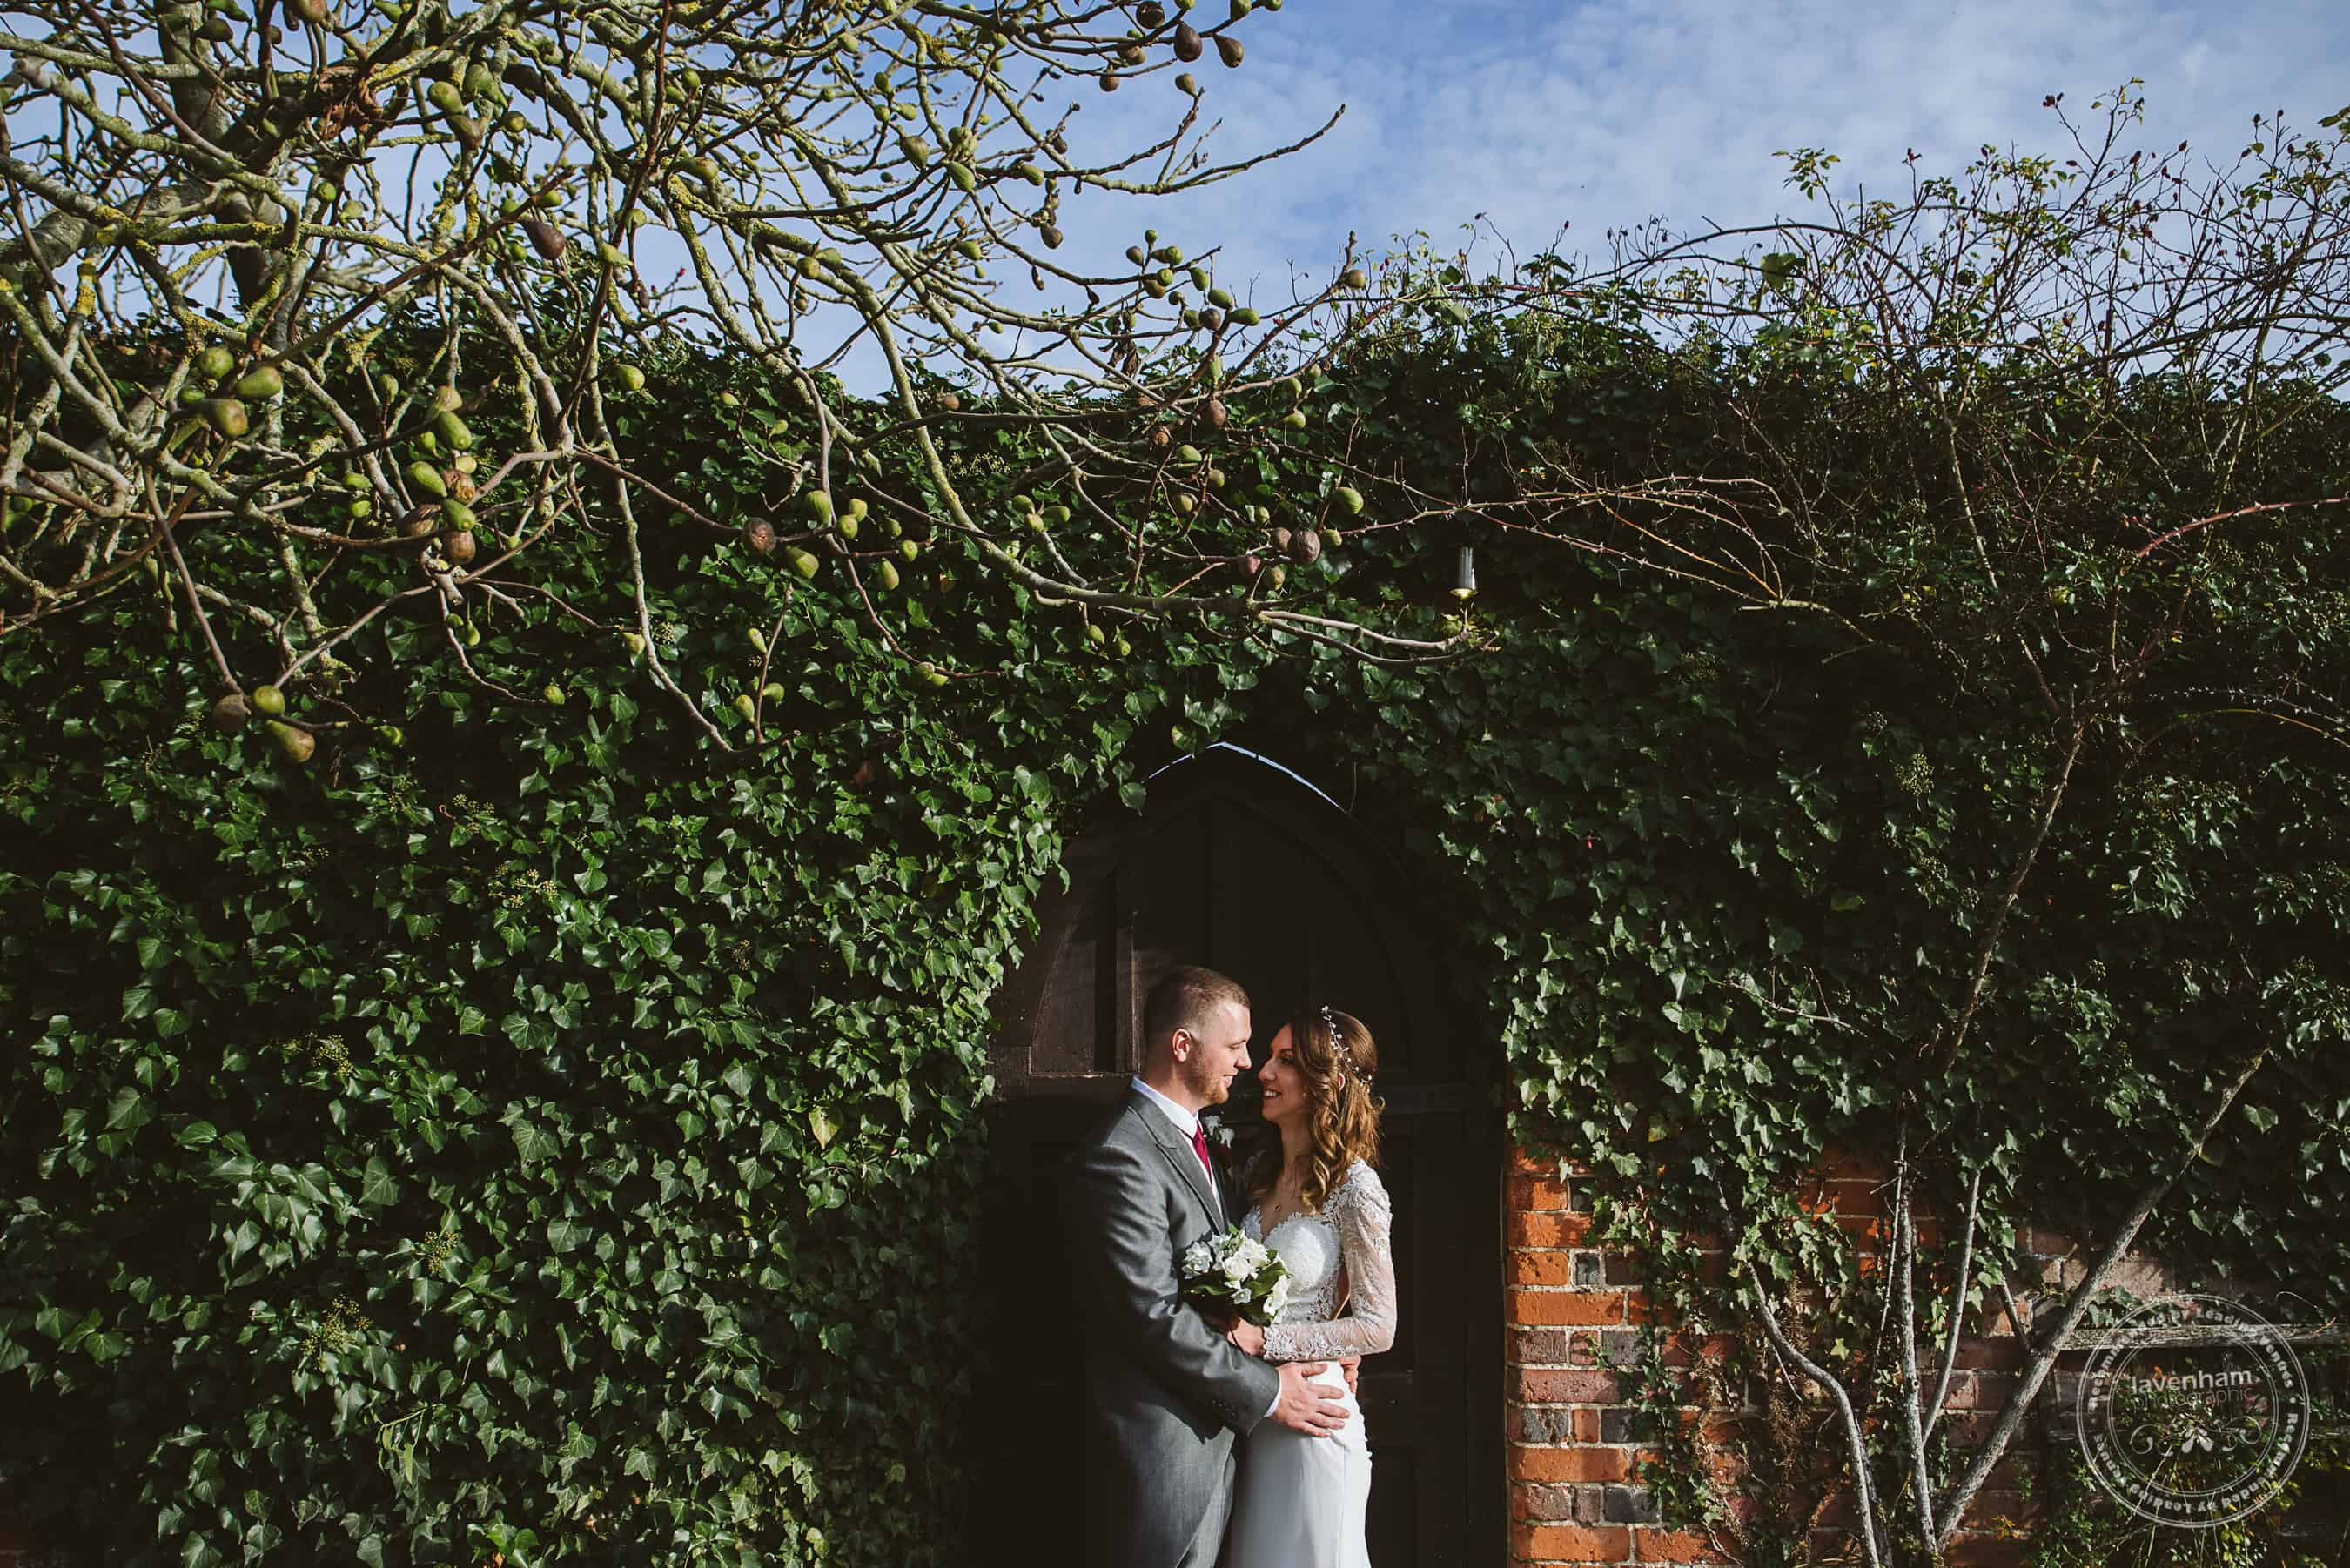 041118 Woodhall Manor Wedding Photography by Lavenham Photographic 062